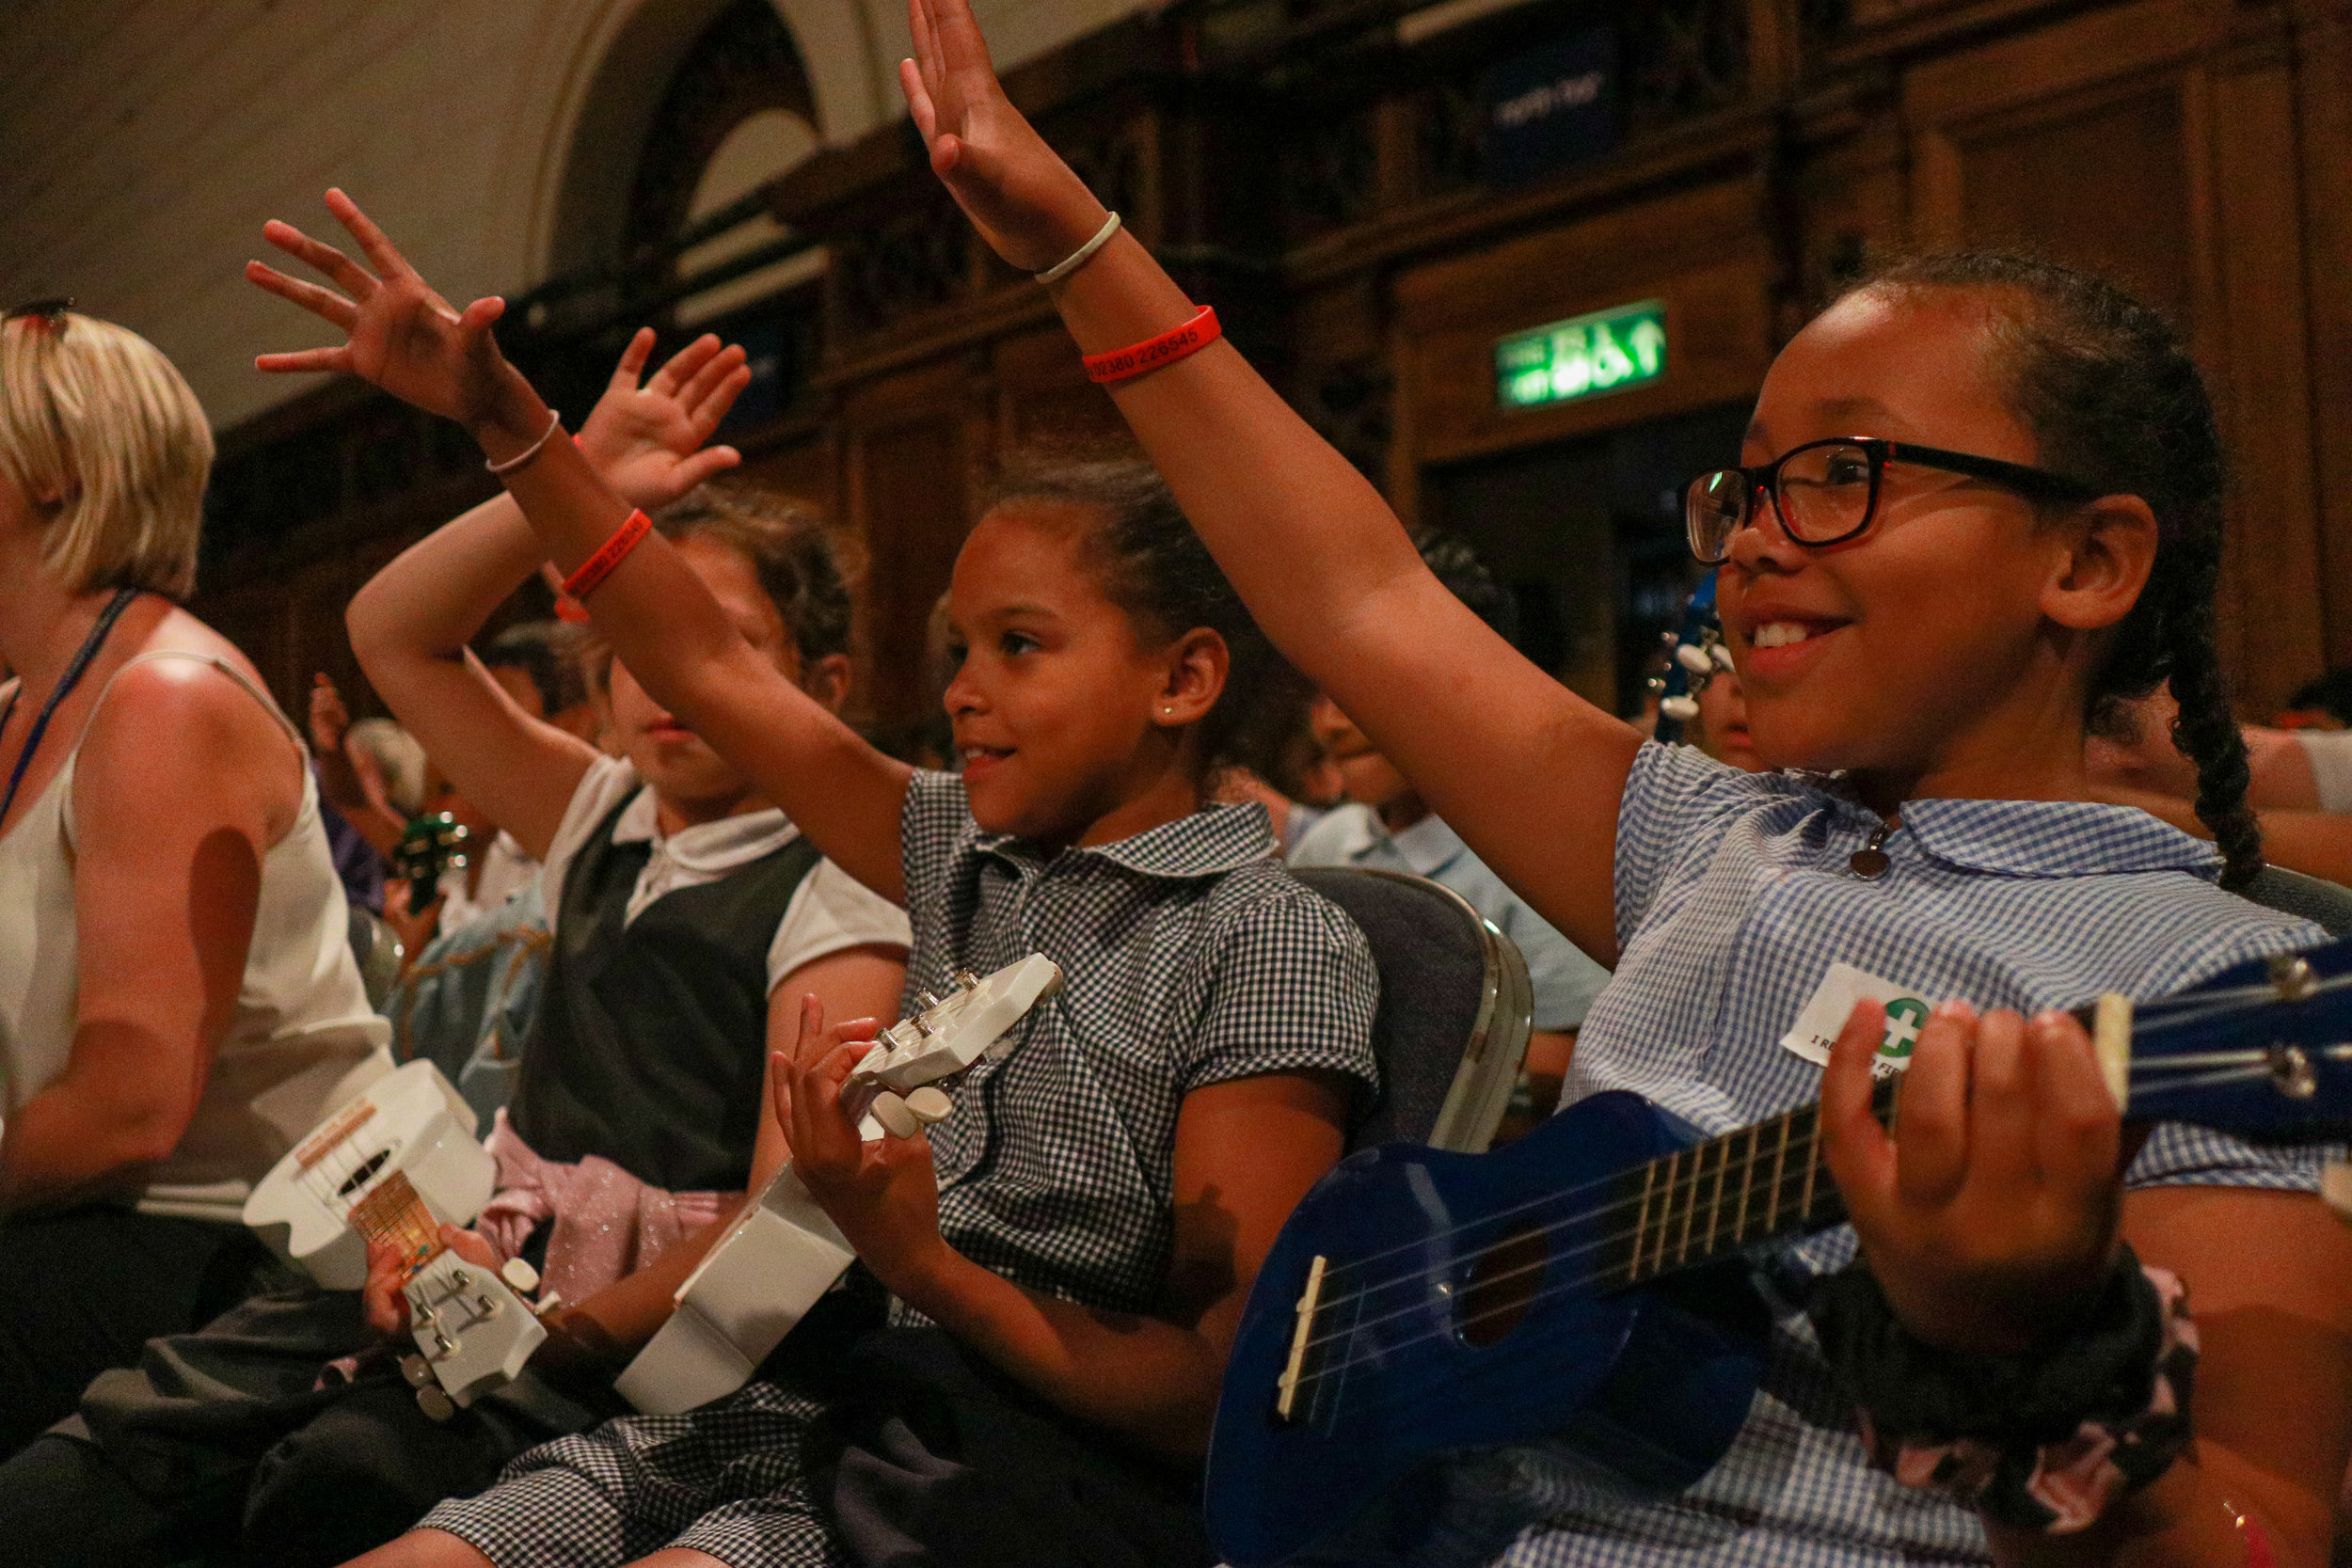 Young ukulele players taking part in a massed playing event alongside 400 others.